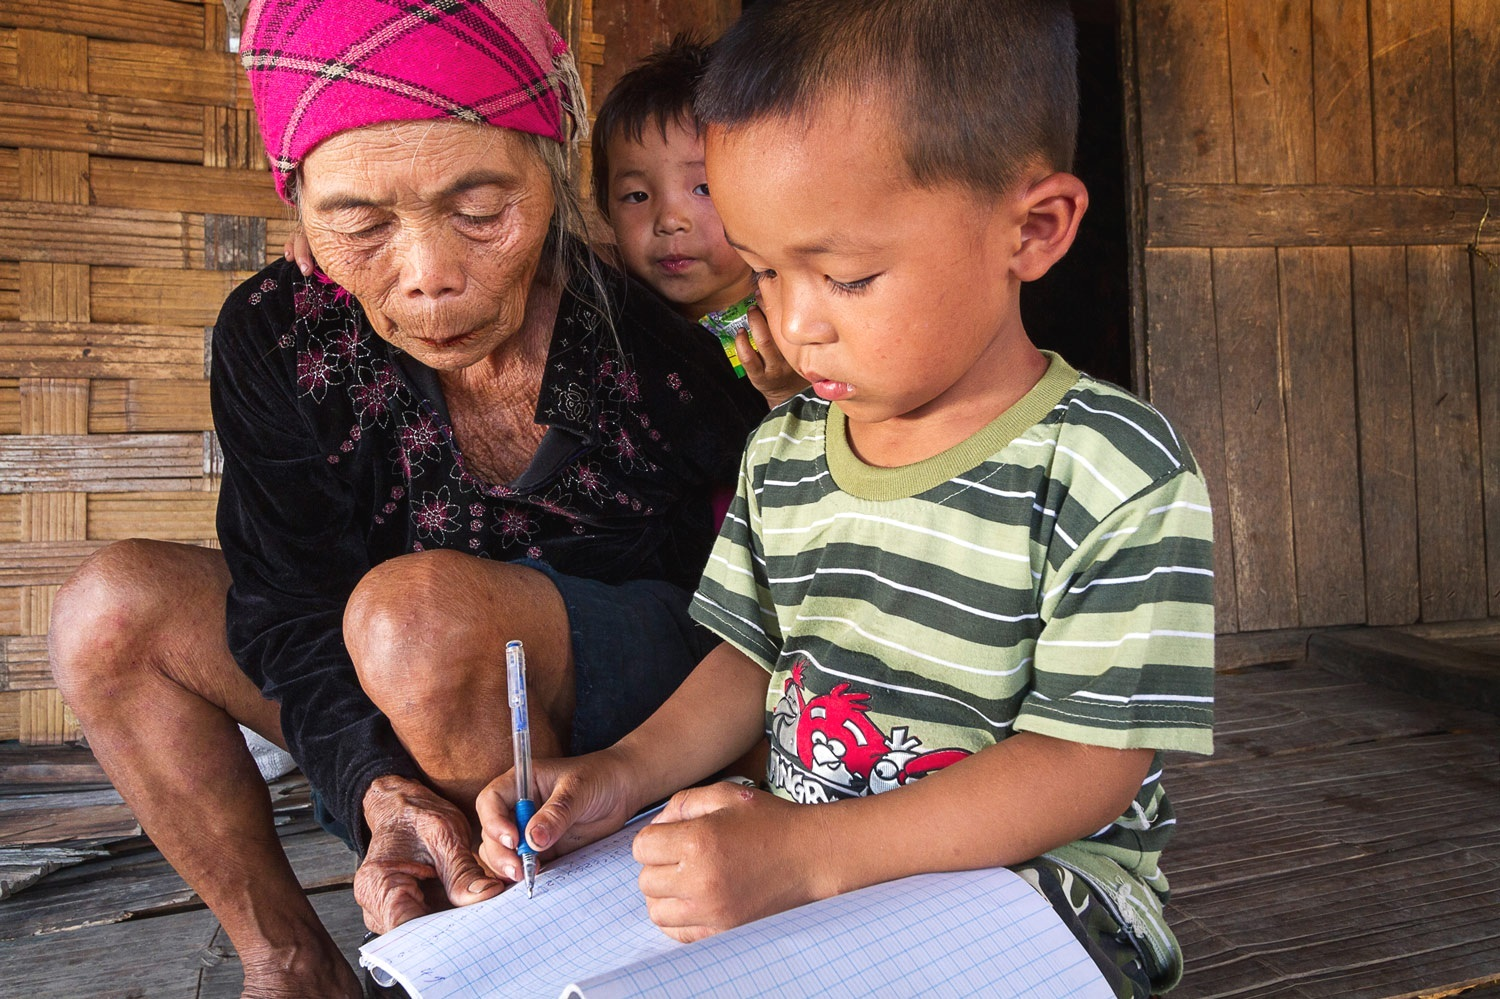 OPEN THIS PUBLICATION  UNICEF LAOS: SA PAE'S STORY